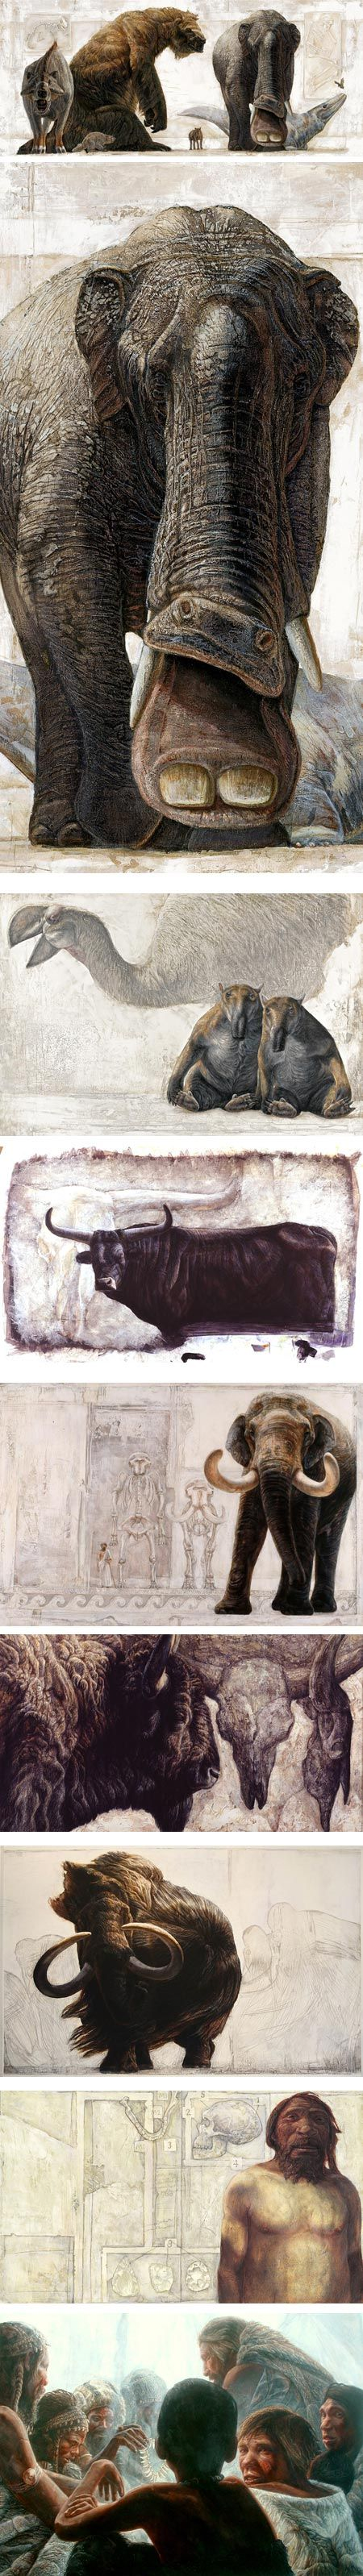 Depictions of prehistoric animals by Dutch brothers Alfons and Adrie Kennis. Beautiful textures, shapes, backgrounds.